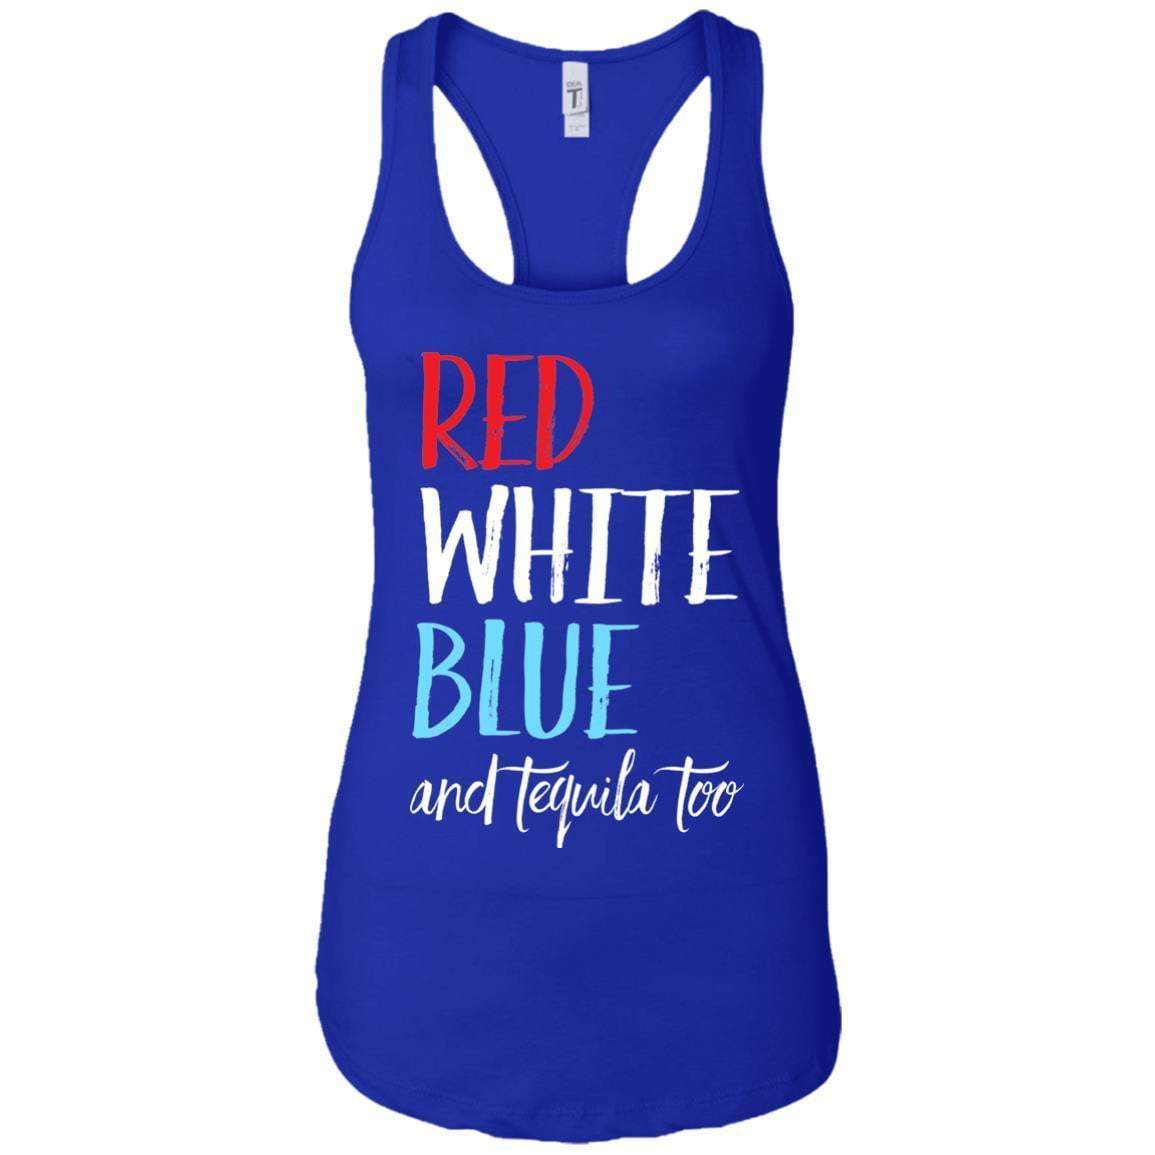 Red White Blue Tequila